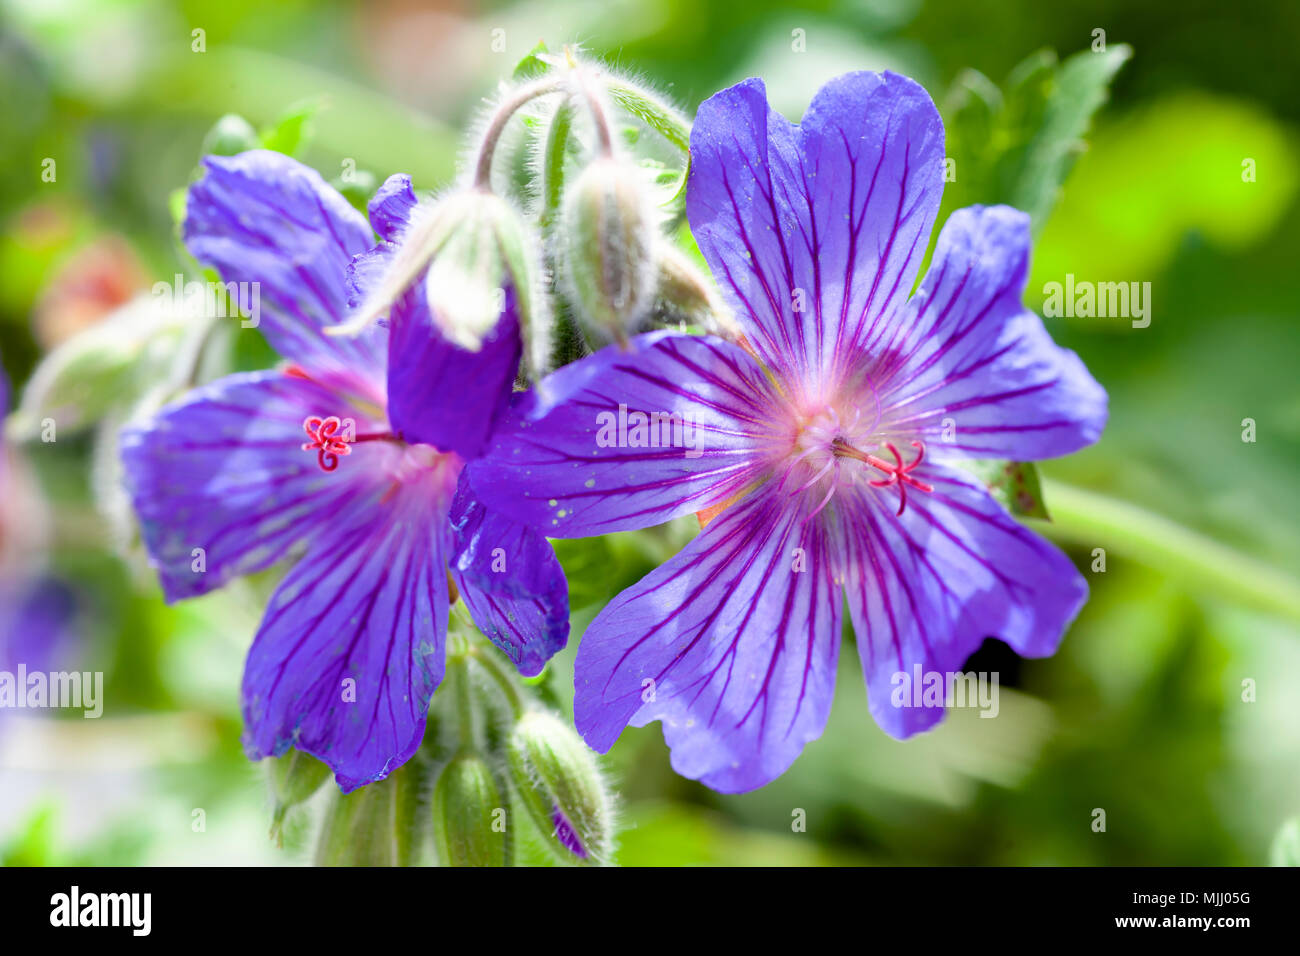 Macro view of cranesbill or hardy perennial geranium. - Stock Image